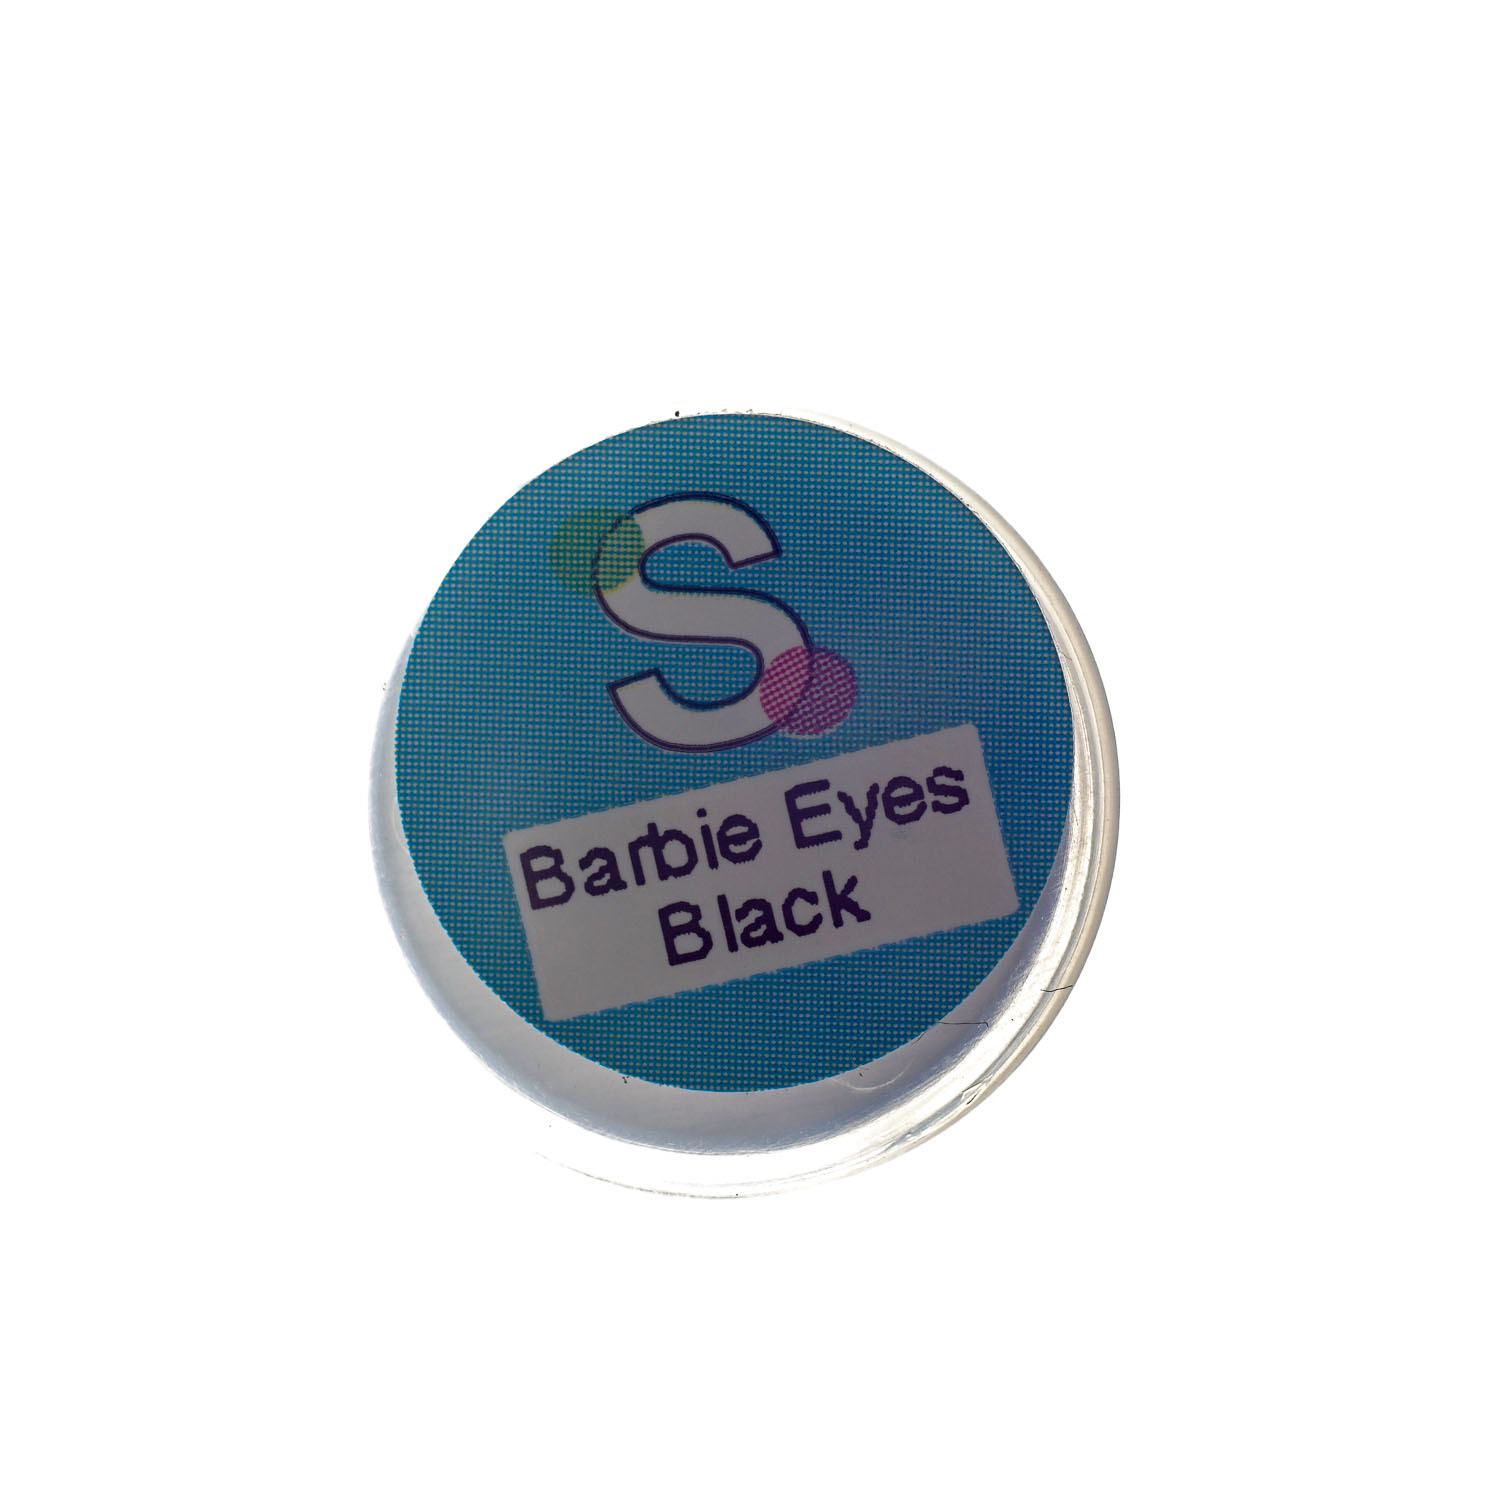 SPARKLE BARBIE EYES BLACK (16 MM WITH 21 MM) CONTACT LENS